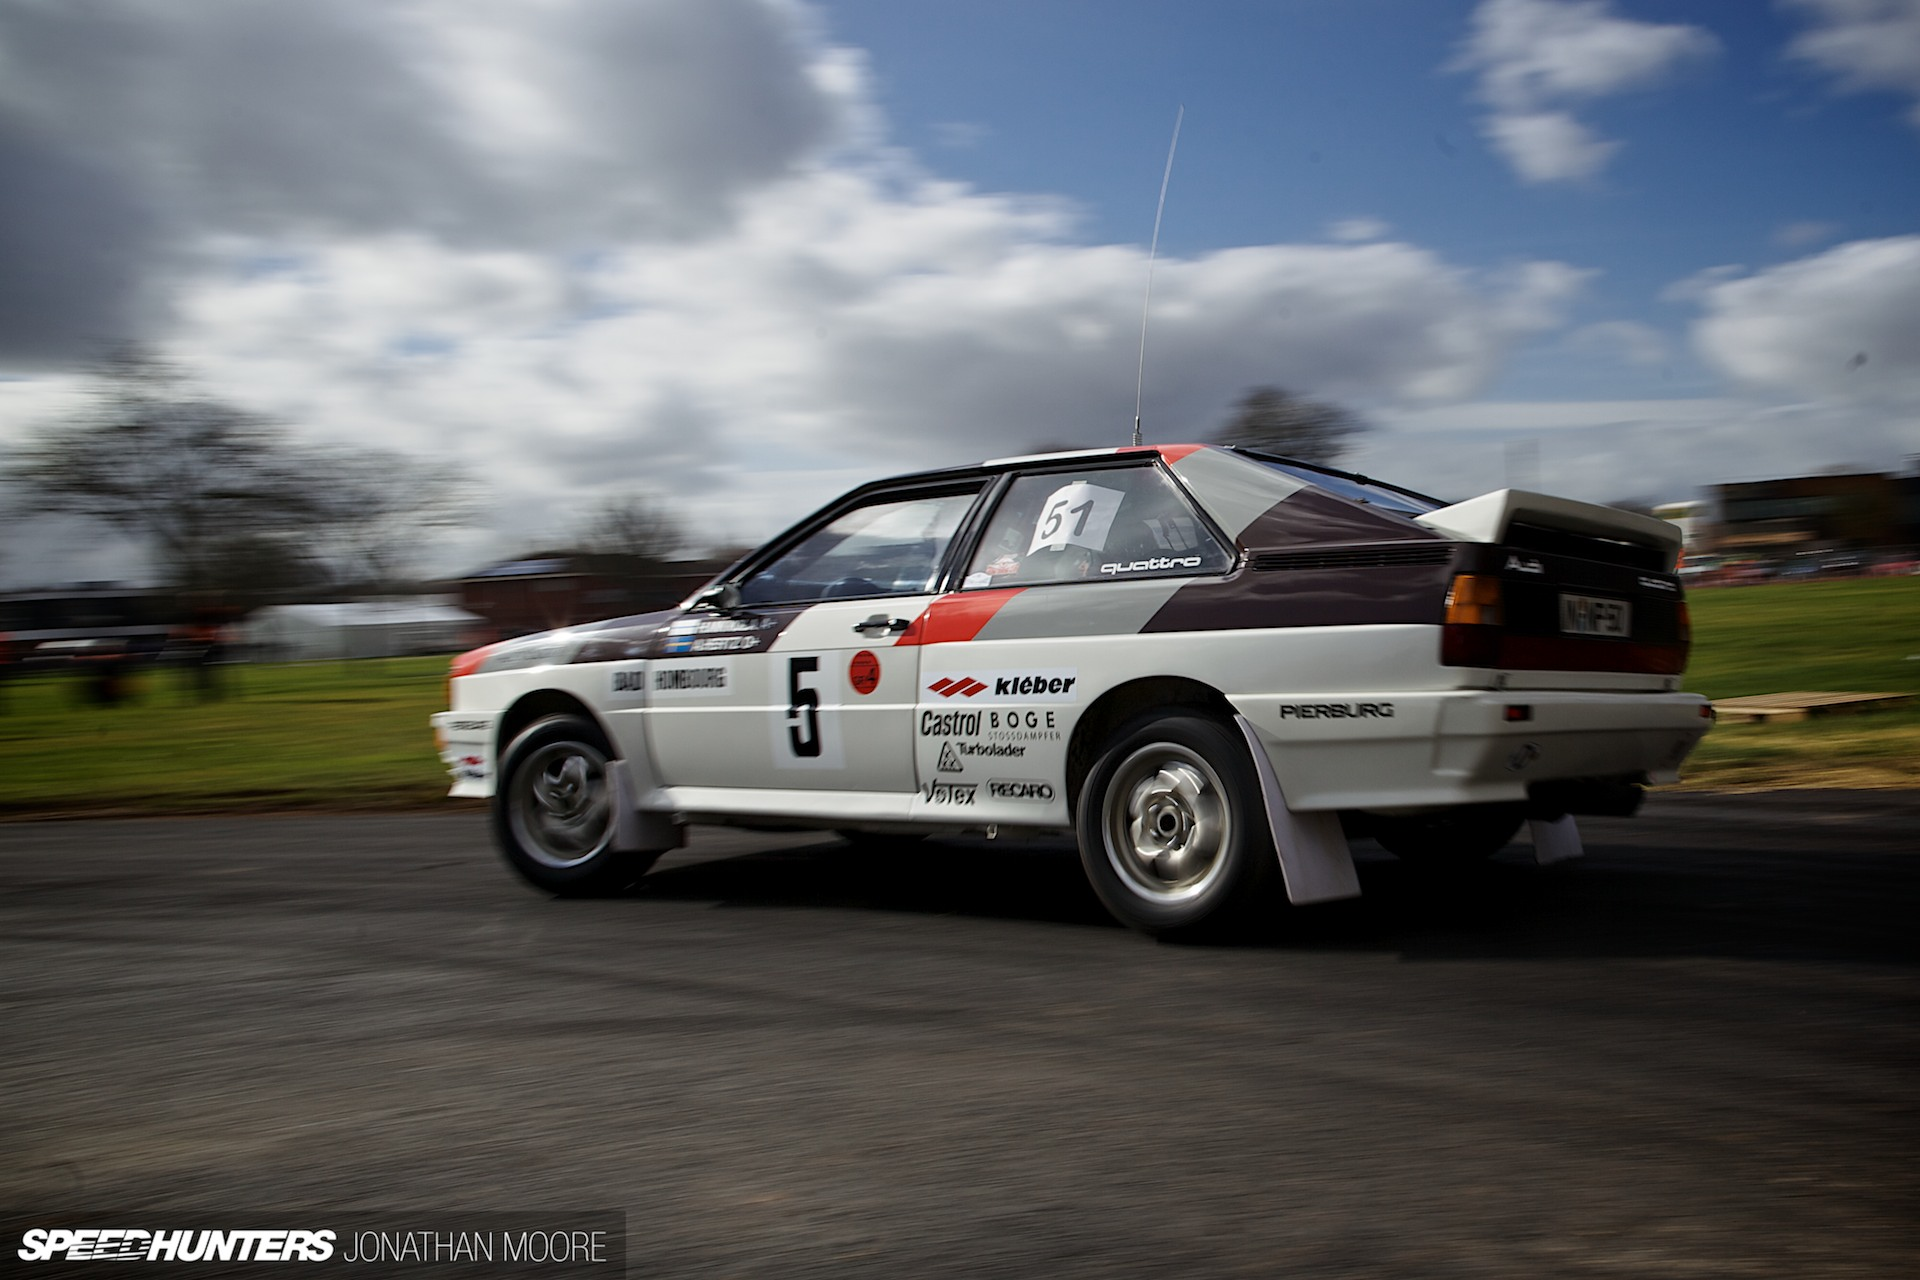 Raiders Of The Lost Park - The Best Rally Cars Ever? - Speedhunters